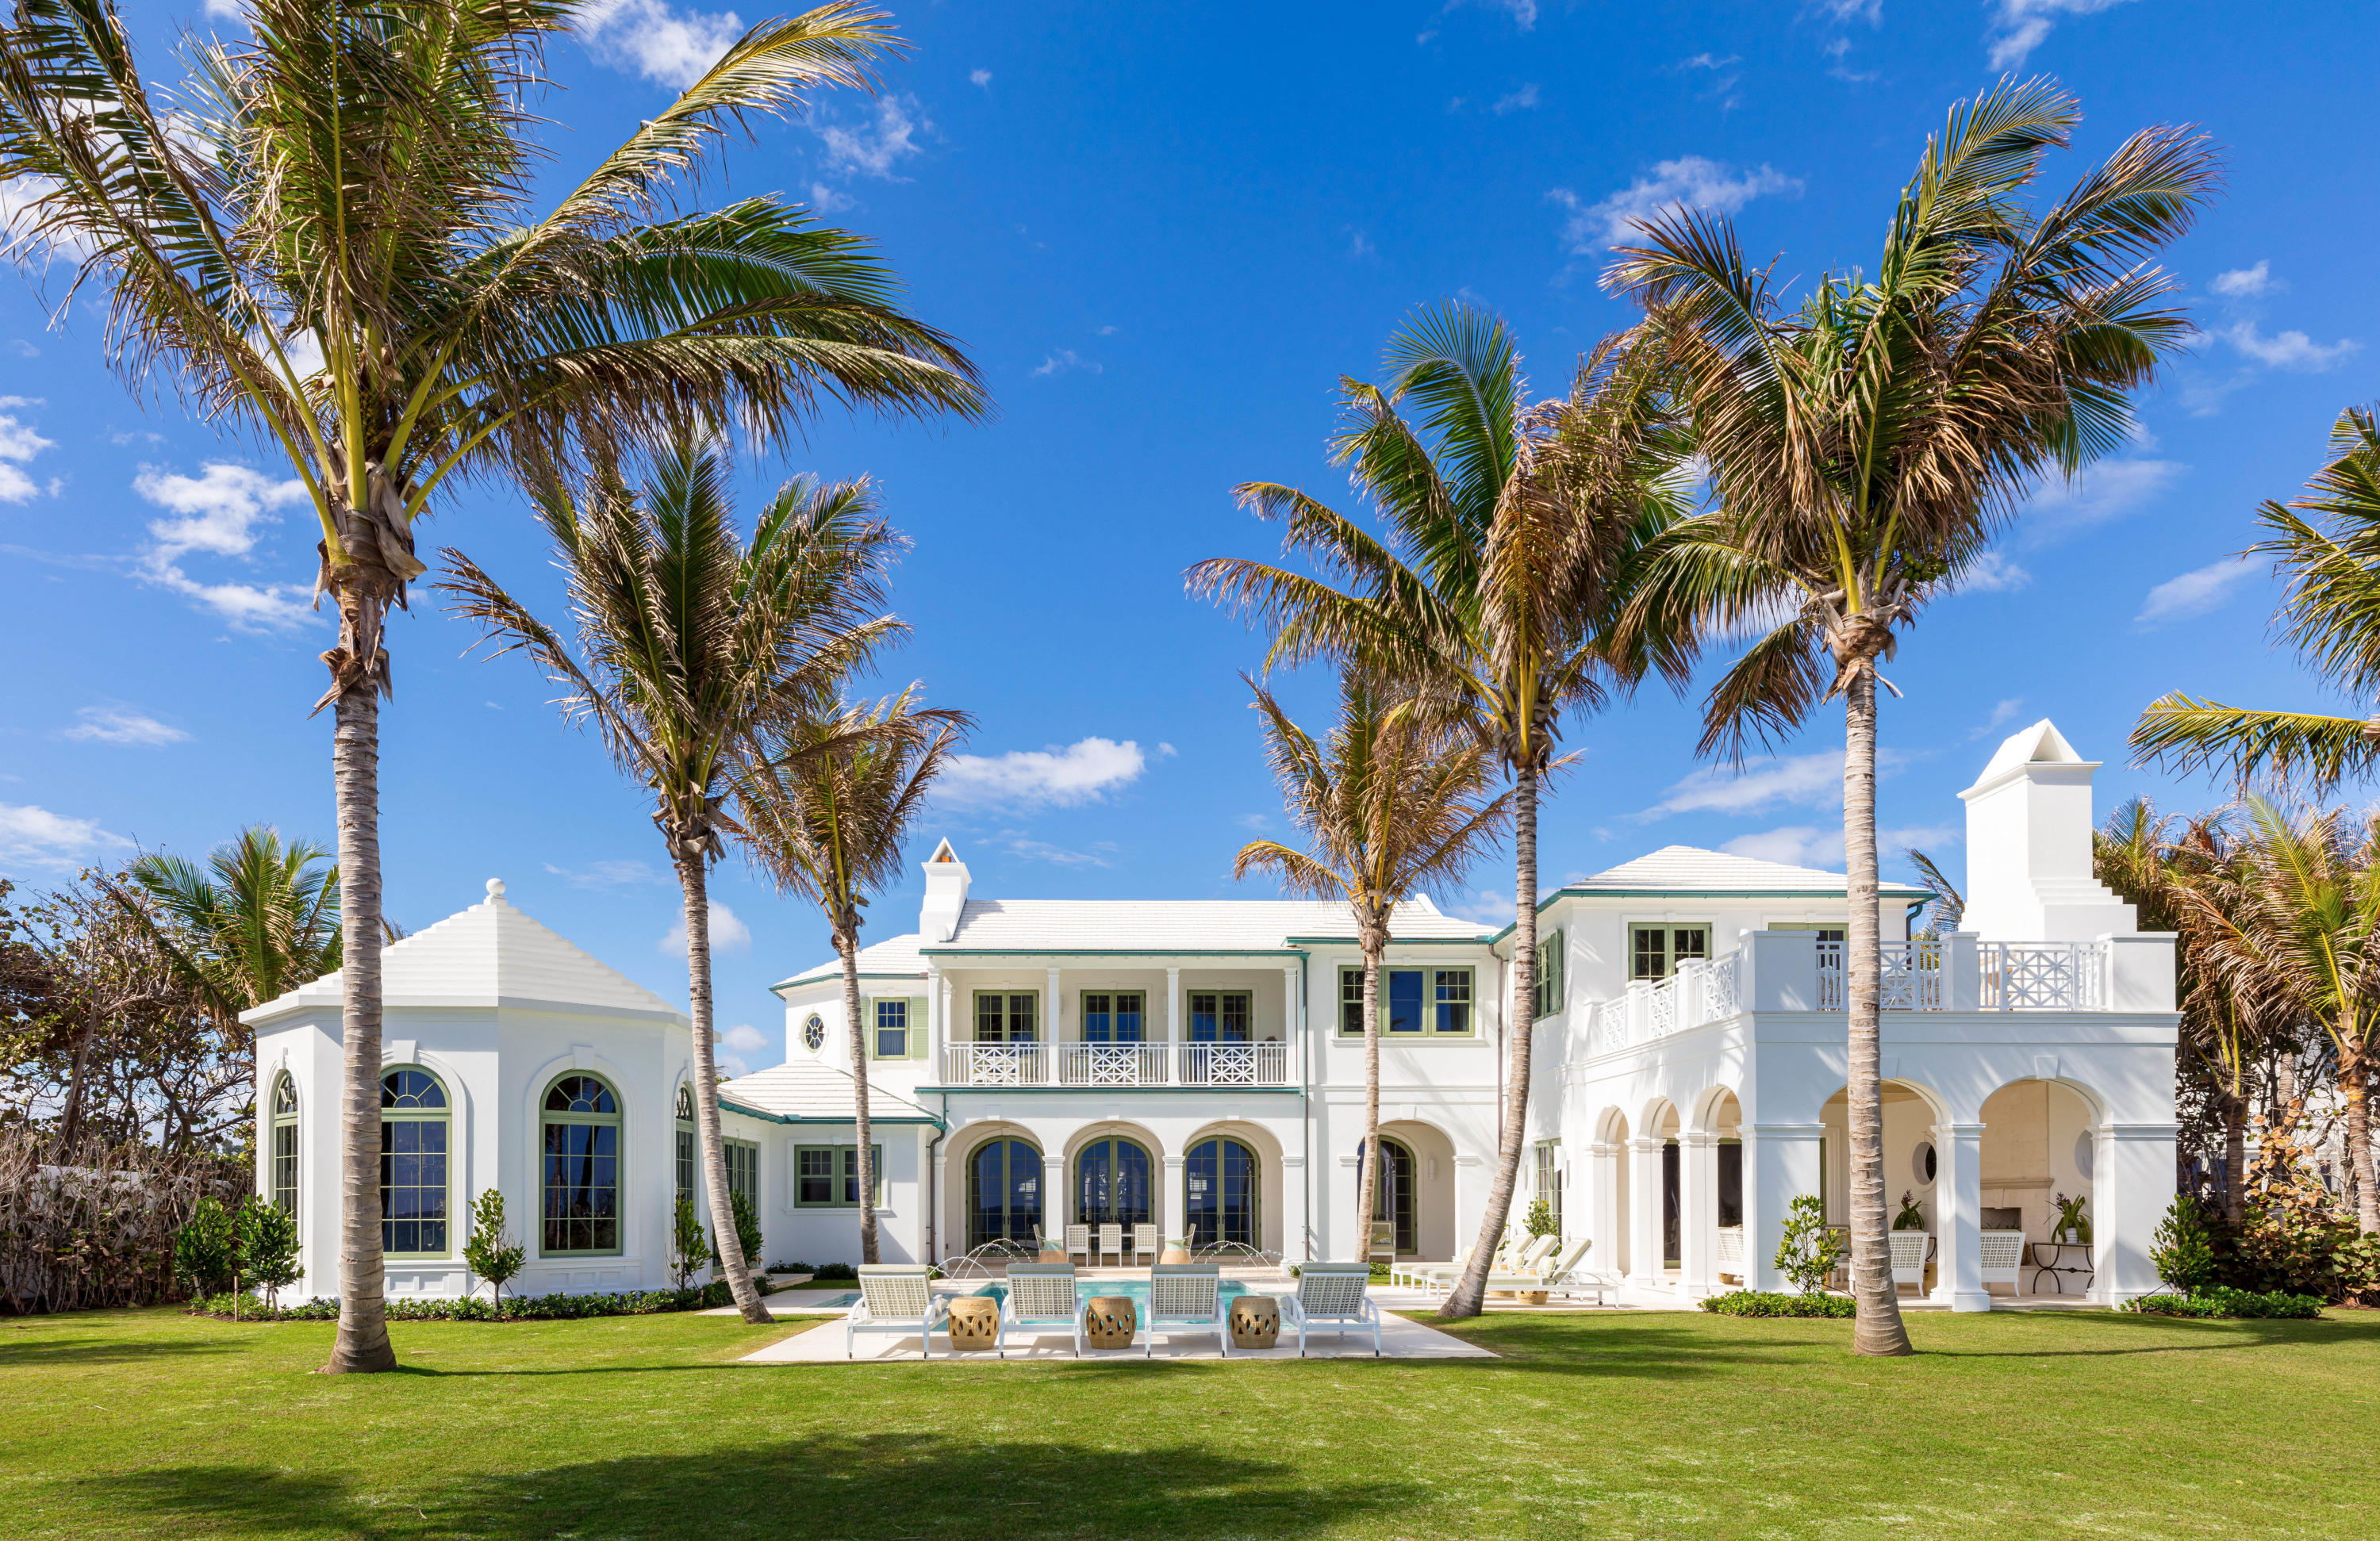 901 N Ocean, Palm Beach, Florida 33480